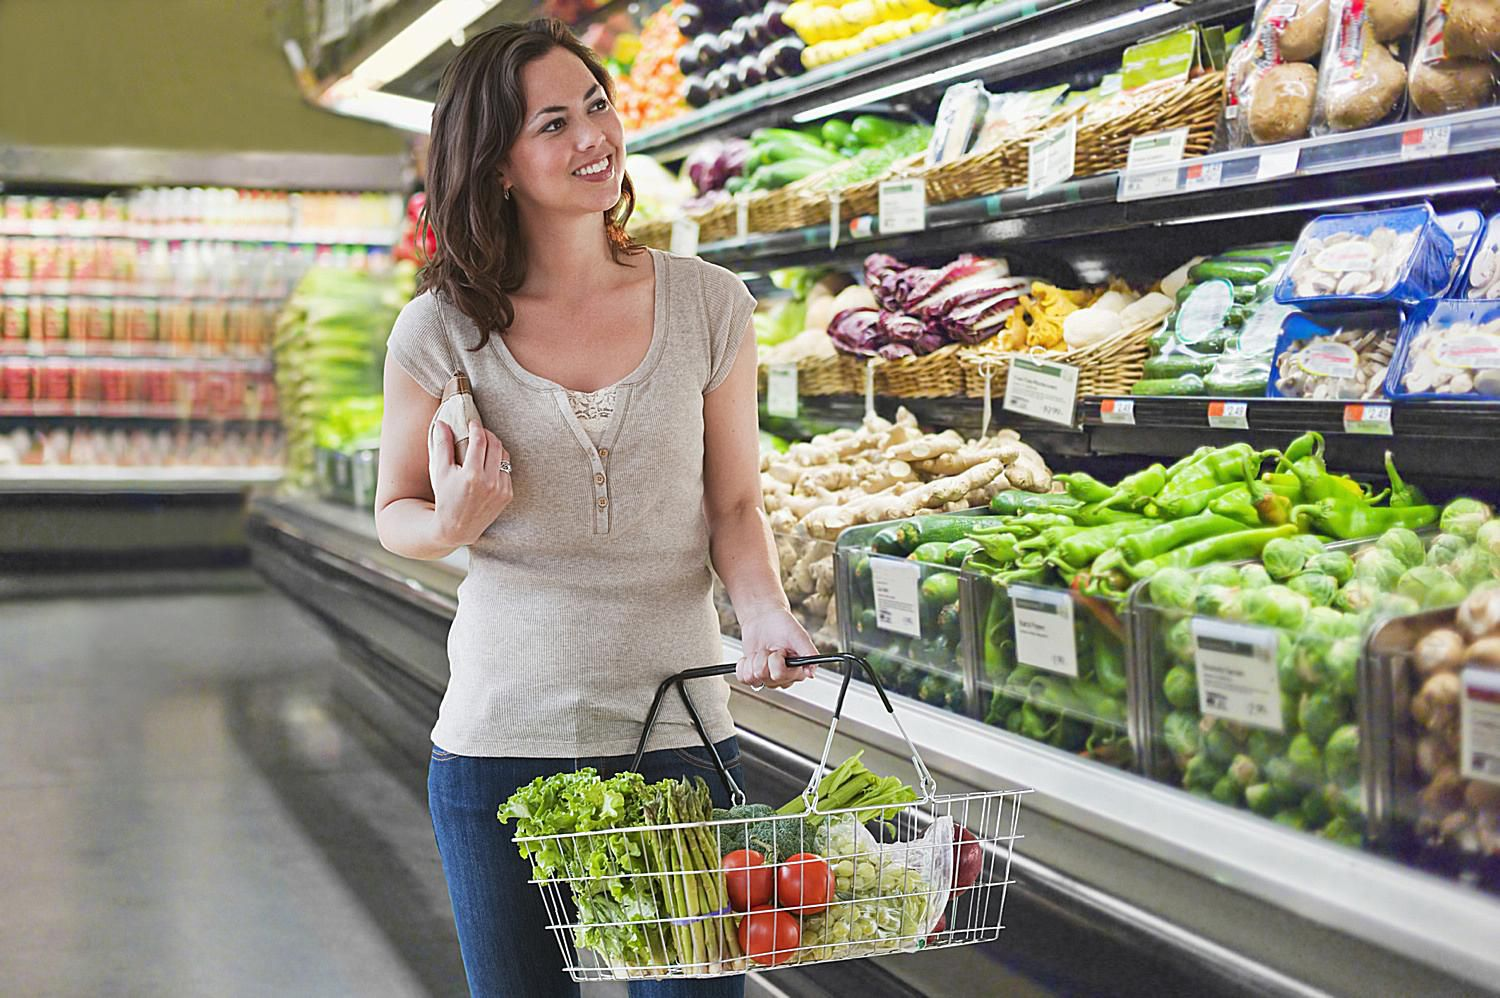 6 simple strategies to save money on groceries